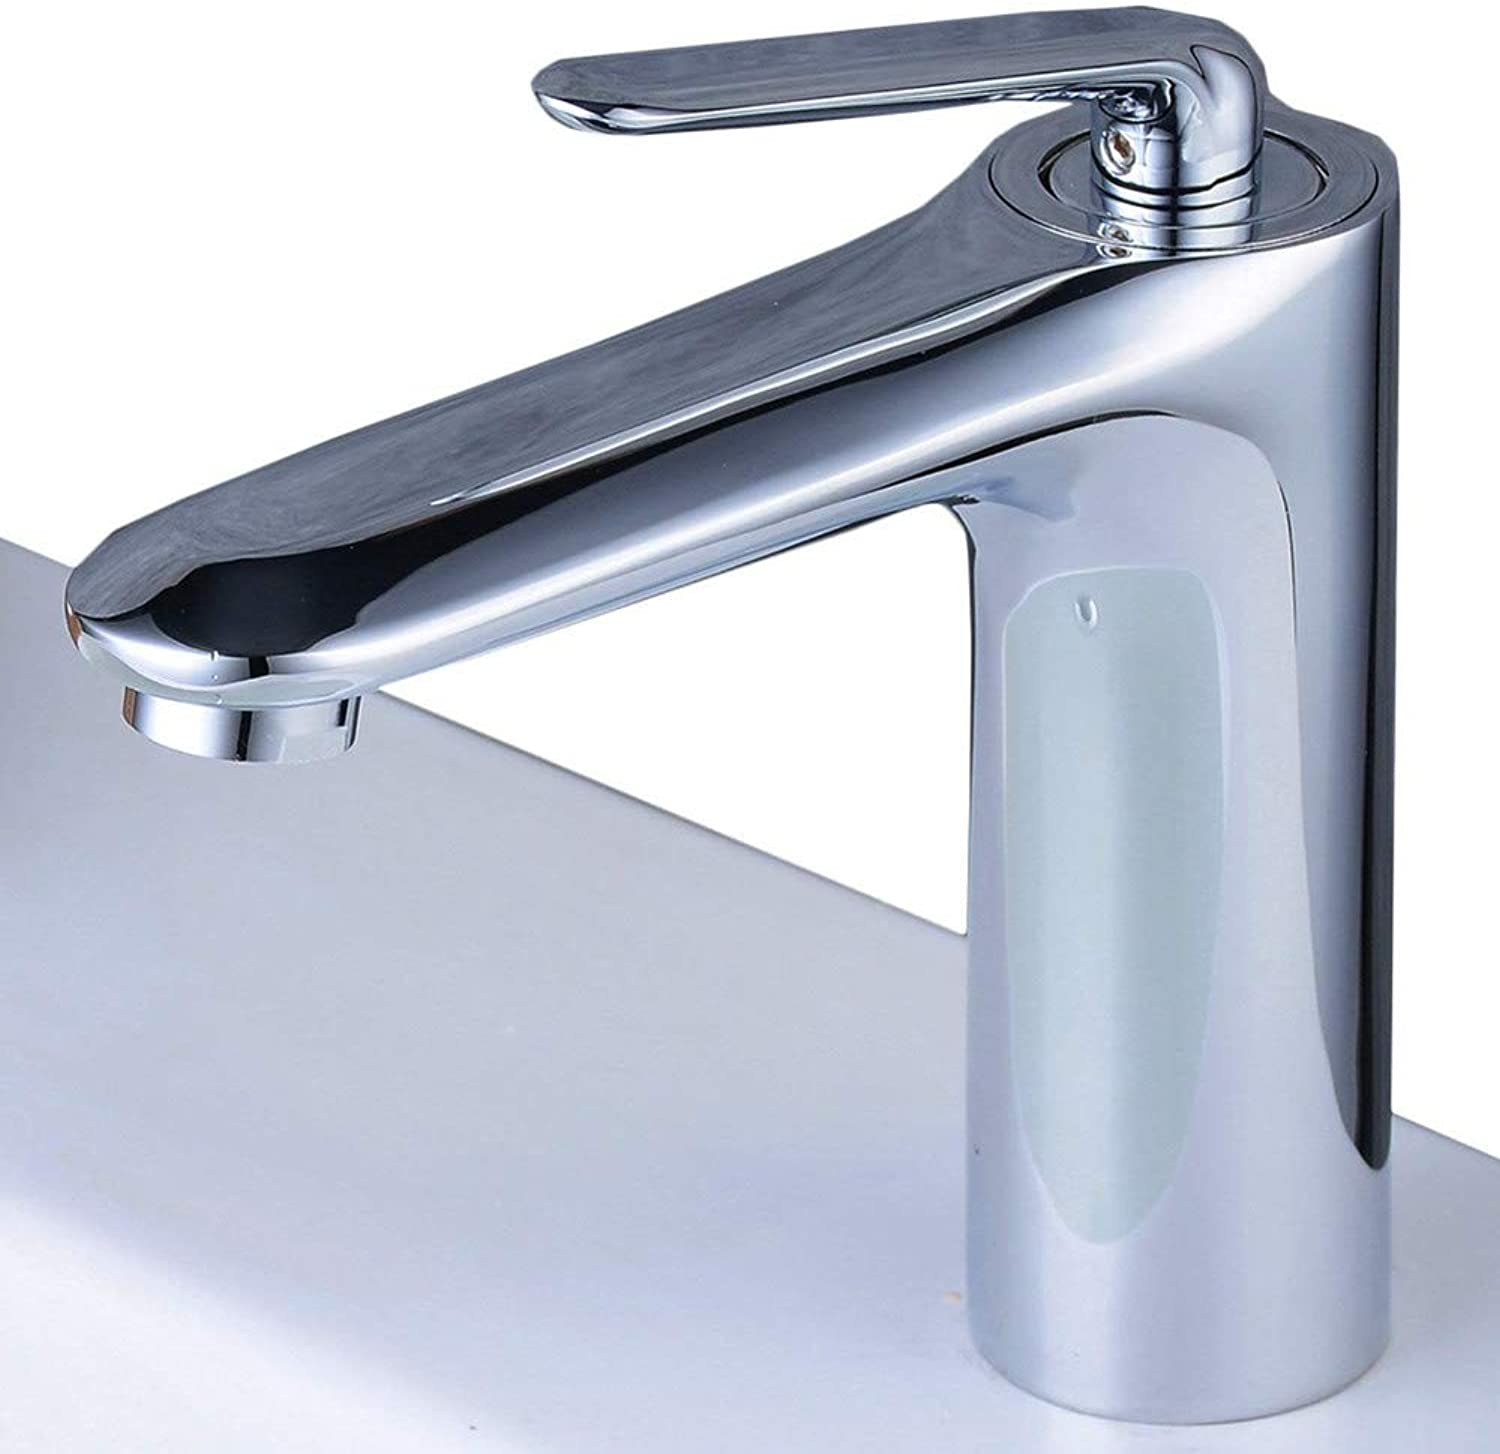 Faucetbathroom Basin Sink Mixer Taps Chrome Solid Brass Basin Hot and Cold Mixer Tap for Lavatory